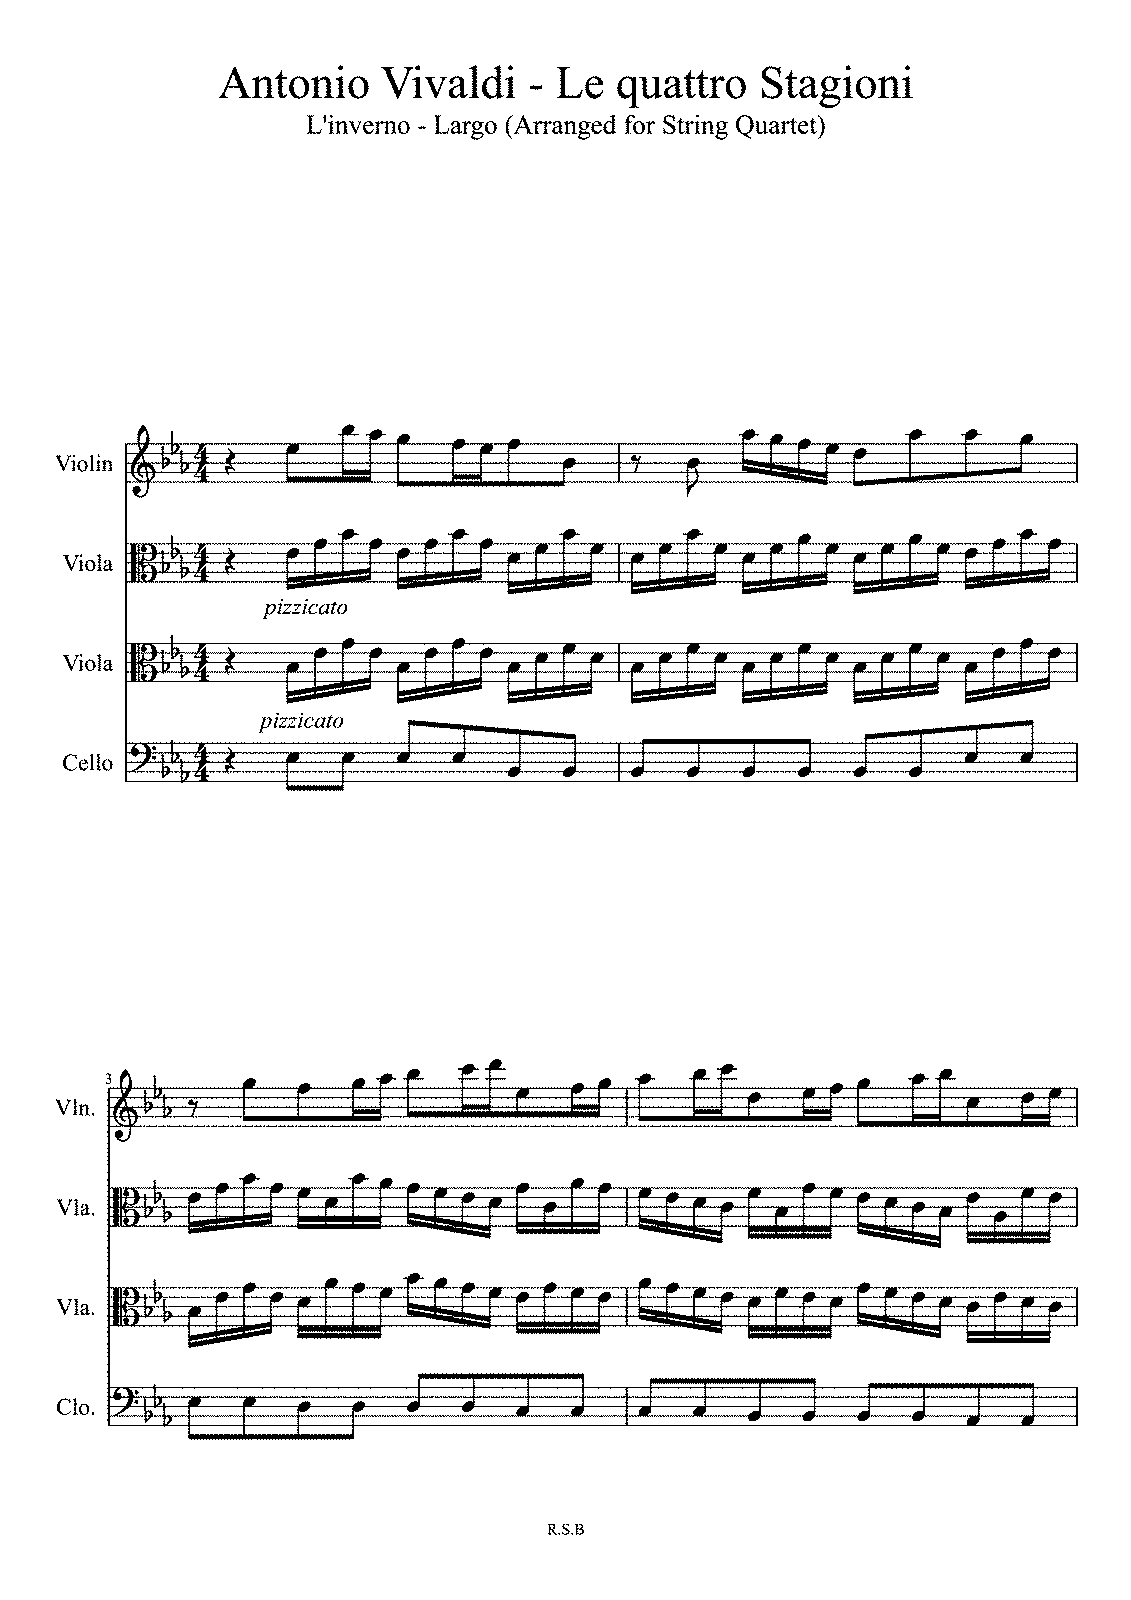 PMLP126435-Linverno Largo (String Quartet by RSB).mscz.pdf